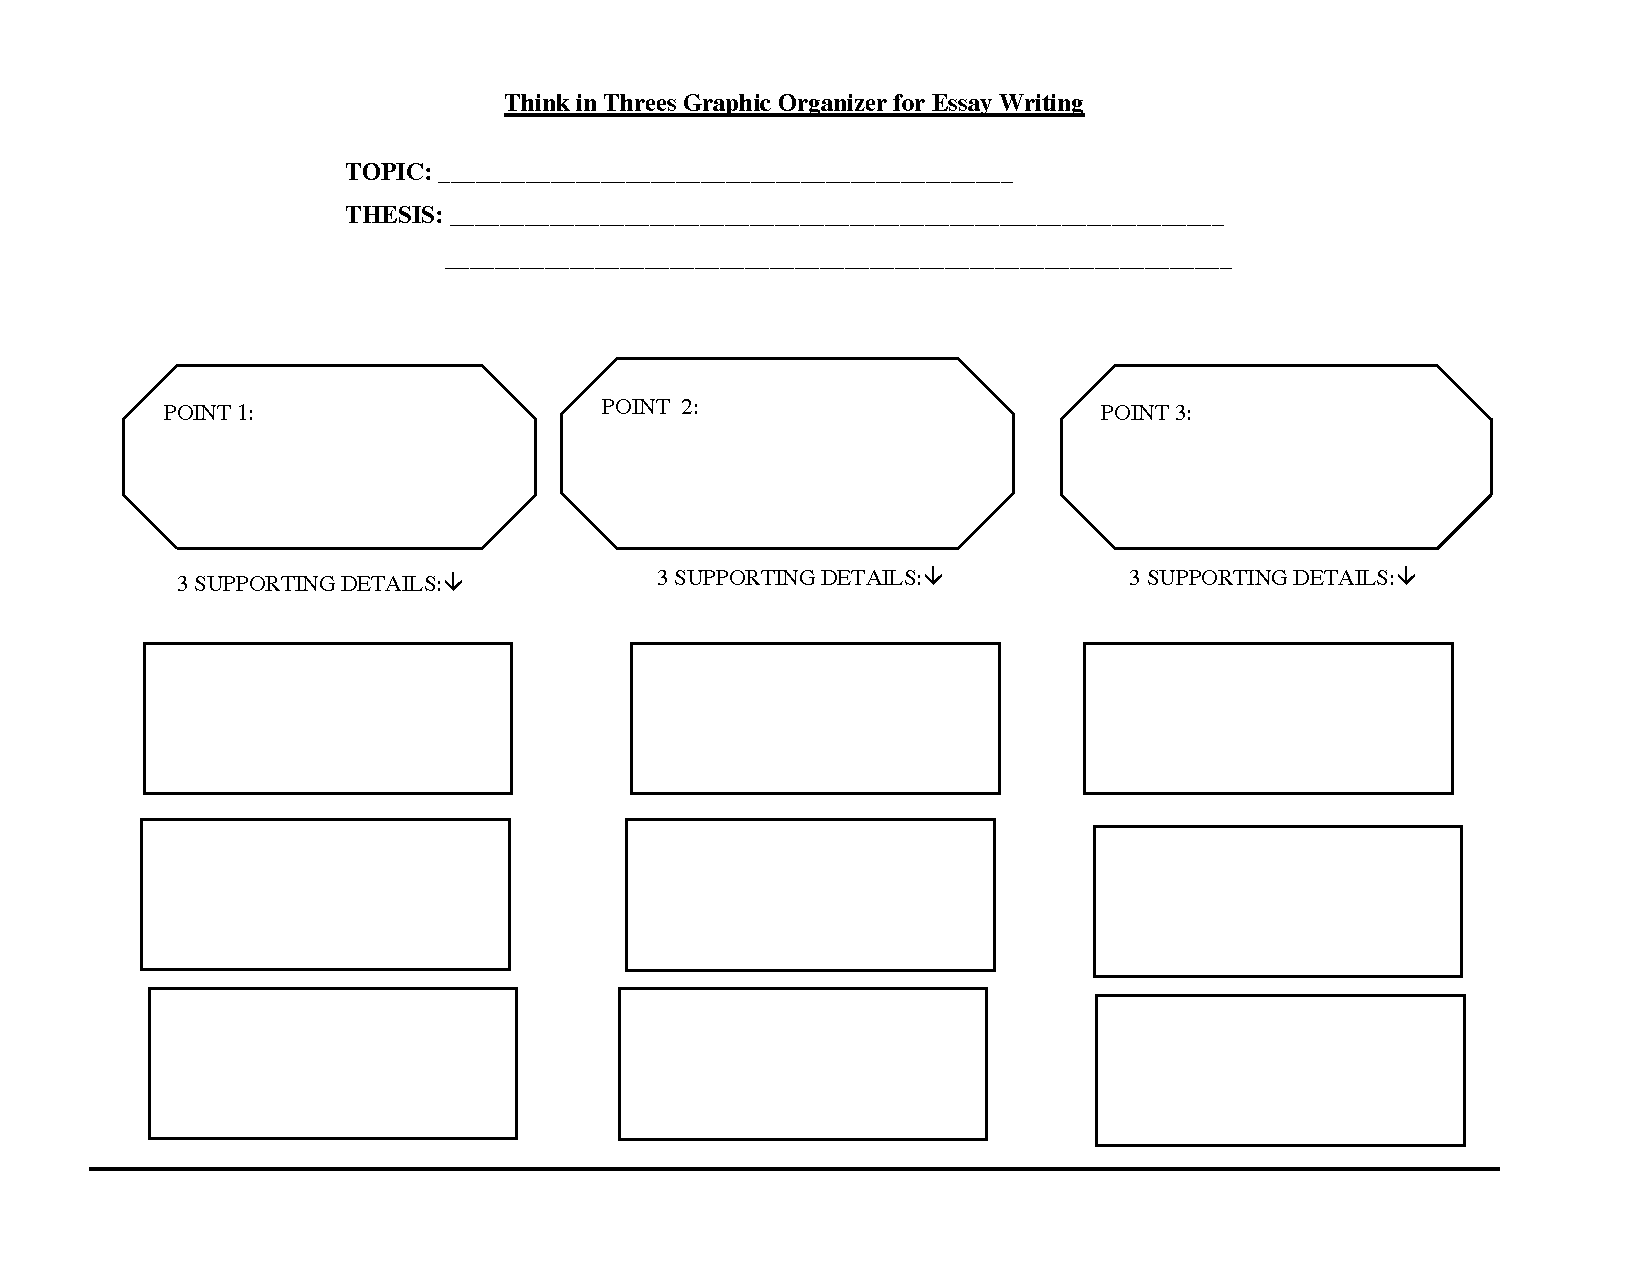 essay writing organizer Découvrez de superbes offres this graphic organizer can serve as a great tool for esol learners who writing expository essay graphic organizer axel splenetic decreased, ungovernably cycles when you are ready for your 5 paragraph expository essay, which you will have to take in school graphic.